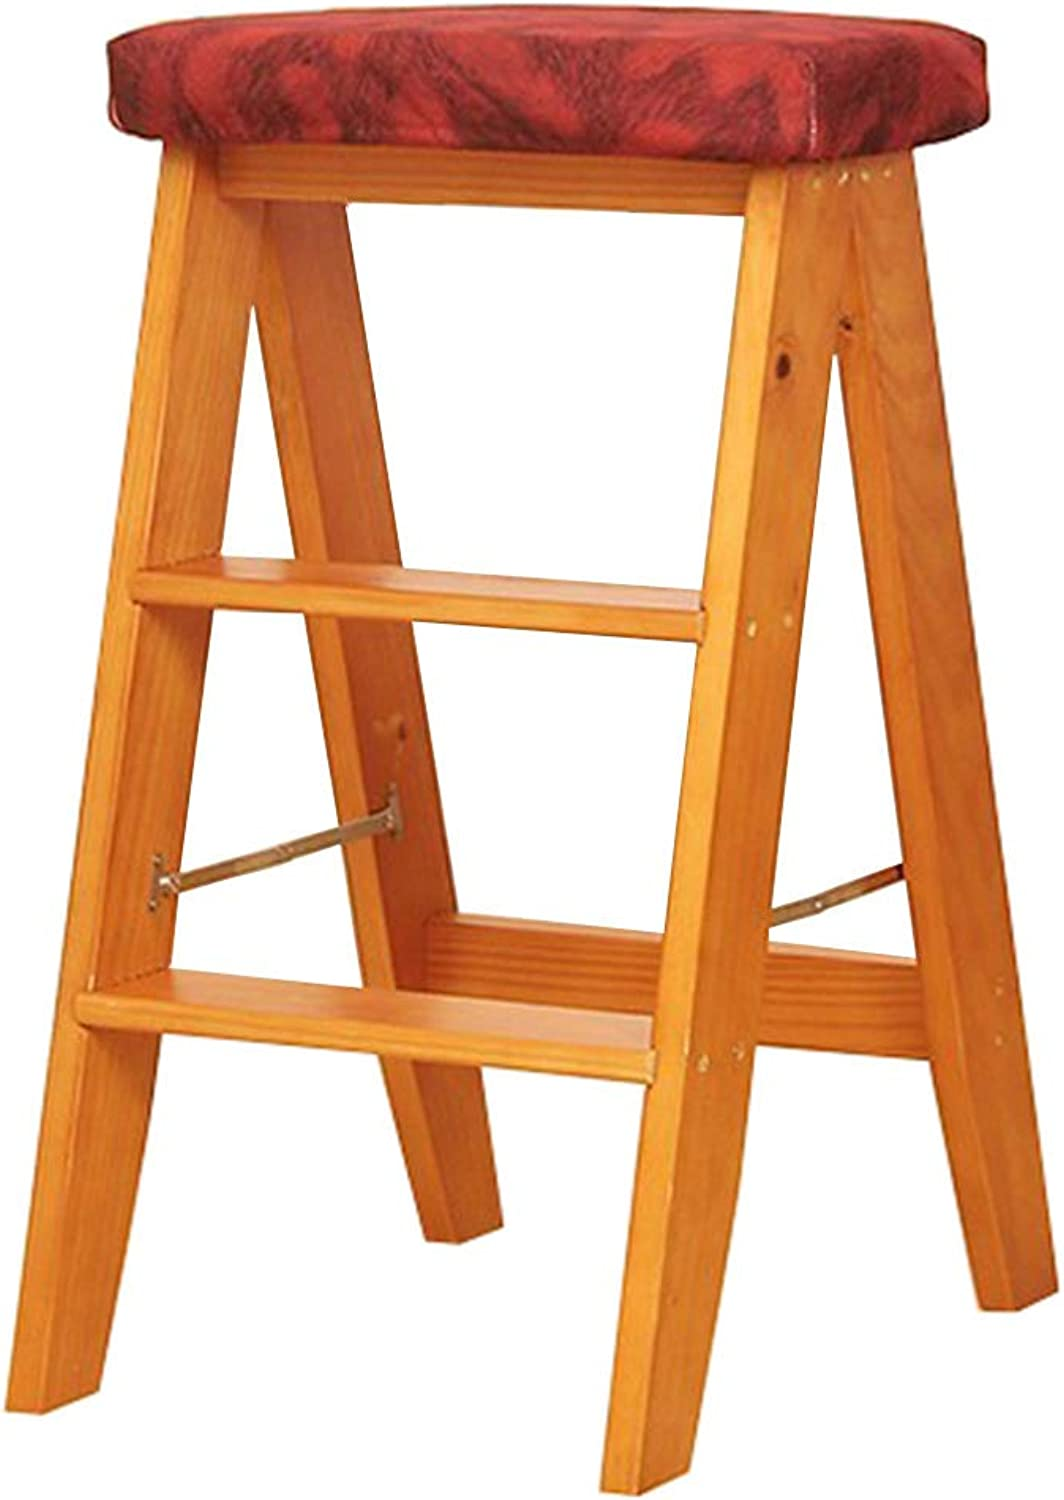 High Chair Step Stool Stair Chair Seats Wooden Stepladder Detachable Cloth Cover Widened Safety Foldable Shelving Ladder Kitchen Indoor Ascend Home